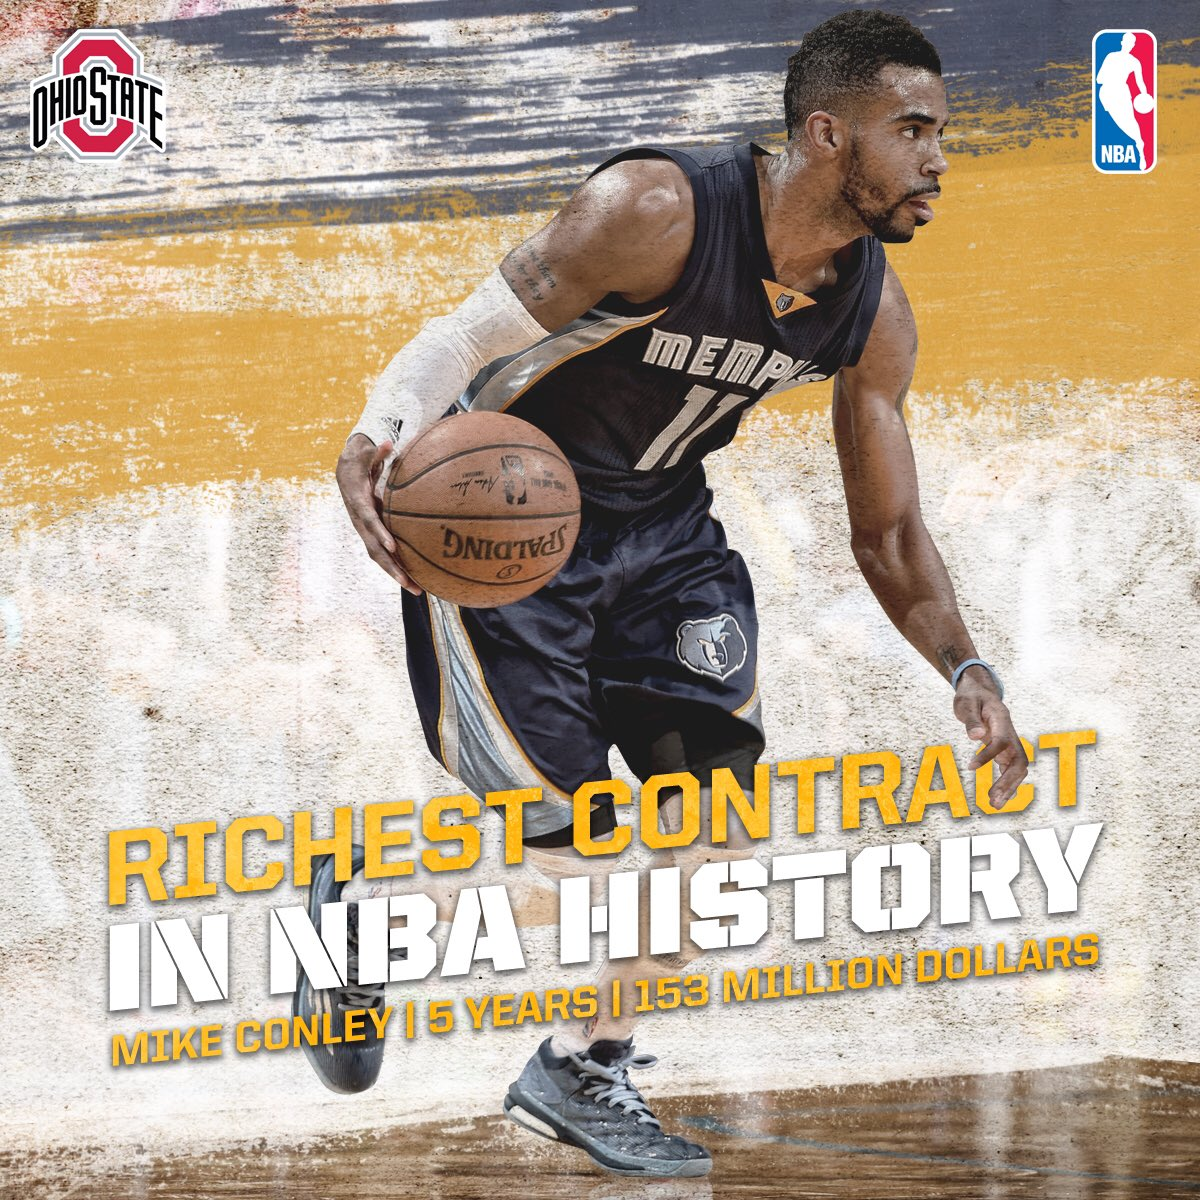 Ohio State Hoops On Twitter Congrats To At Mconley11 On His New 153